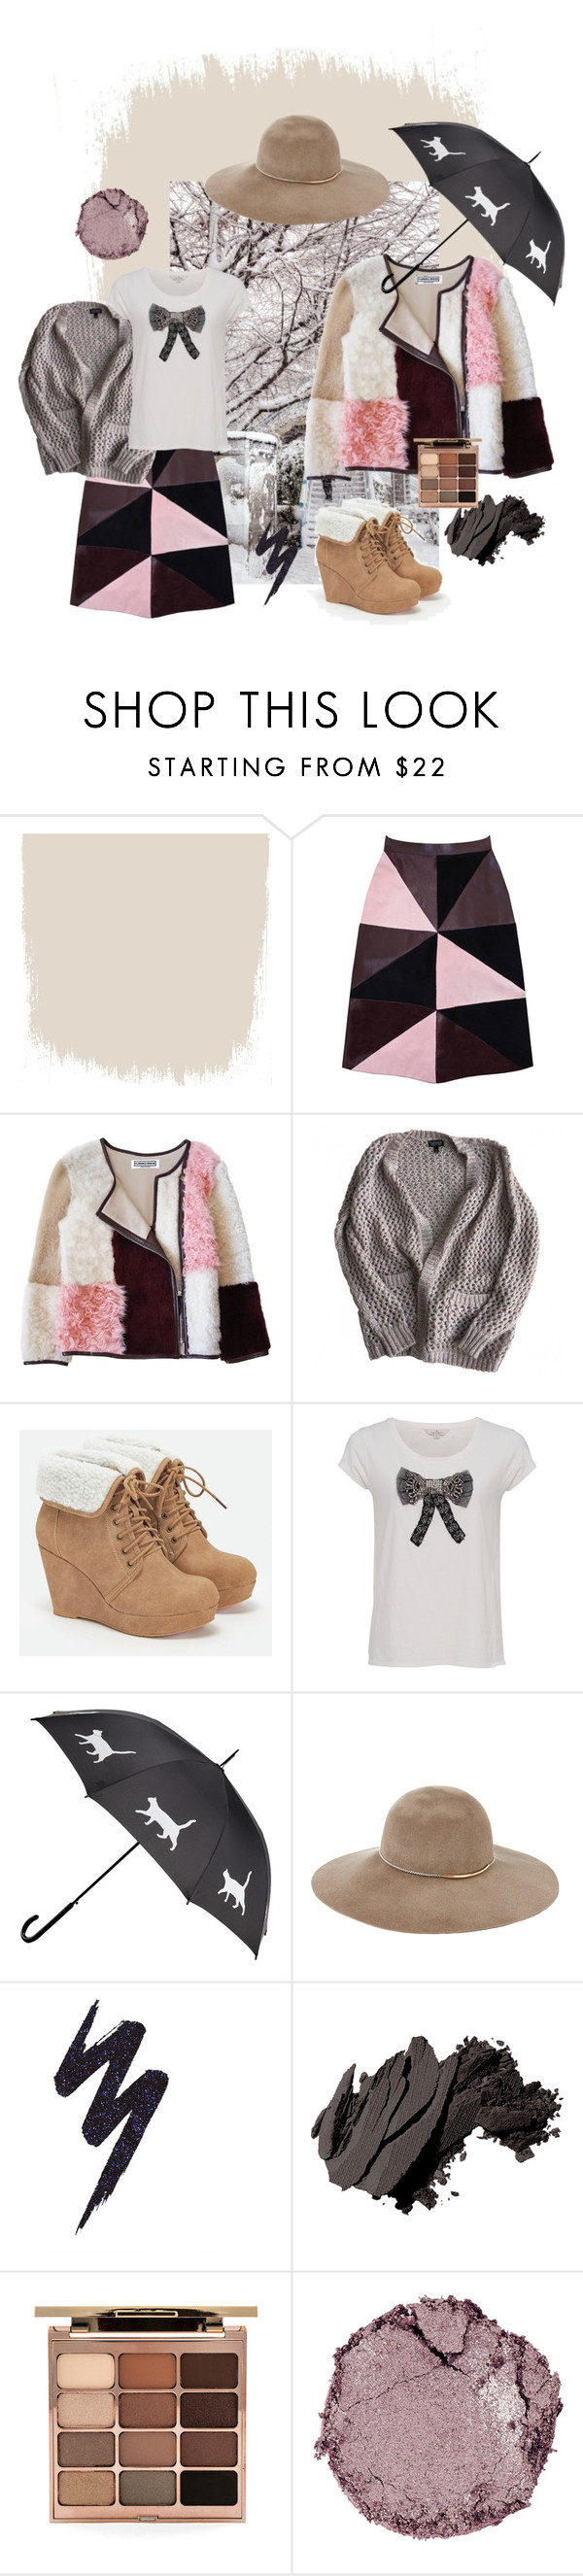 """нежность"" by ludmilakorolko ❤ liked on Polyvore featuring Shibuya, Florence Bridge, Topshop, JustFab, French Connection, Eugenia Kim, Urban Decay, Bobbi Brown Cosmetics, Stila and Chantecaille"